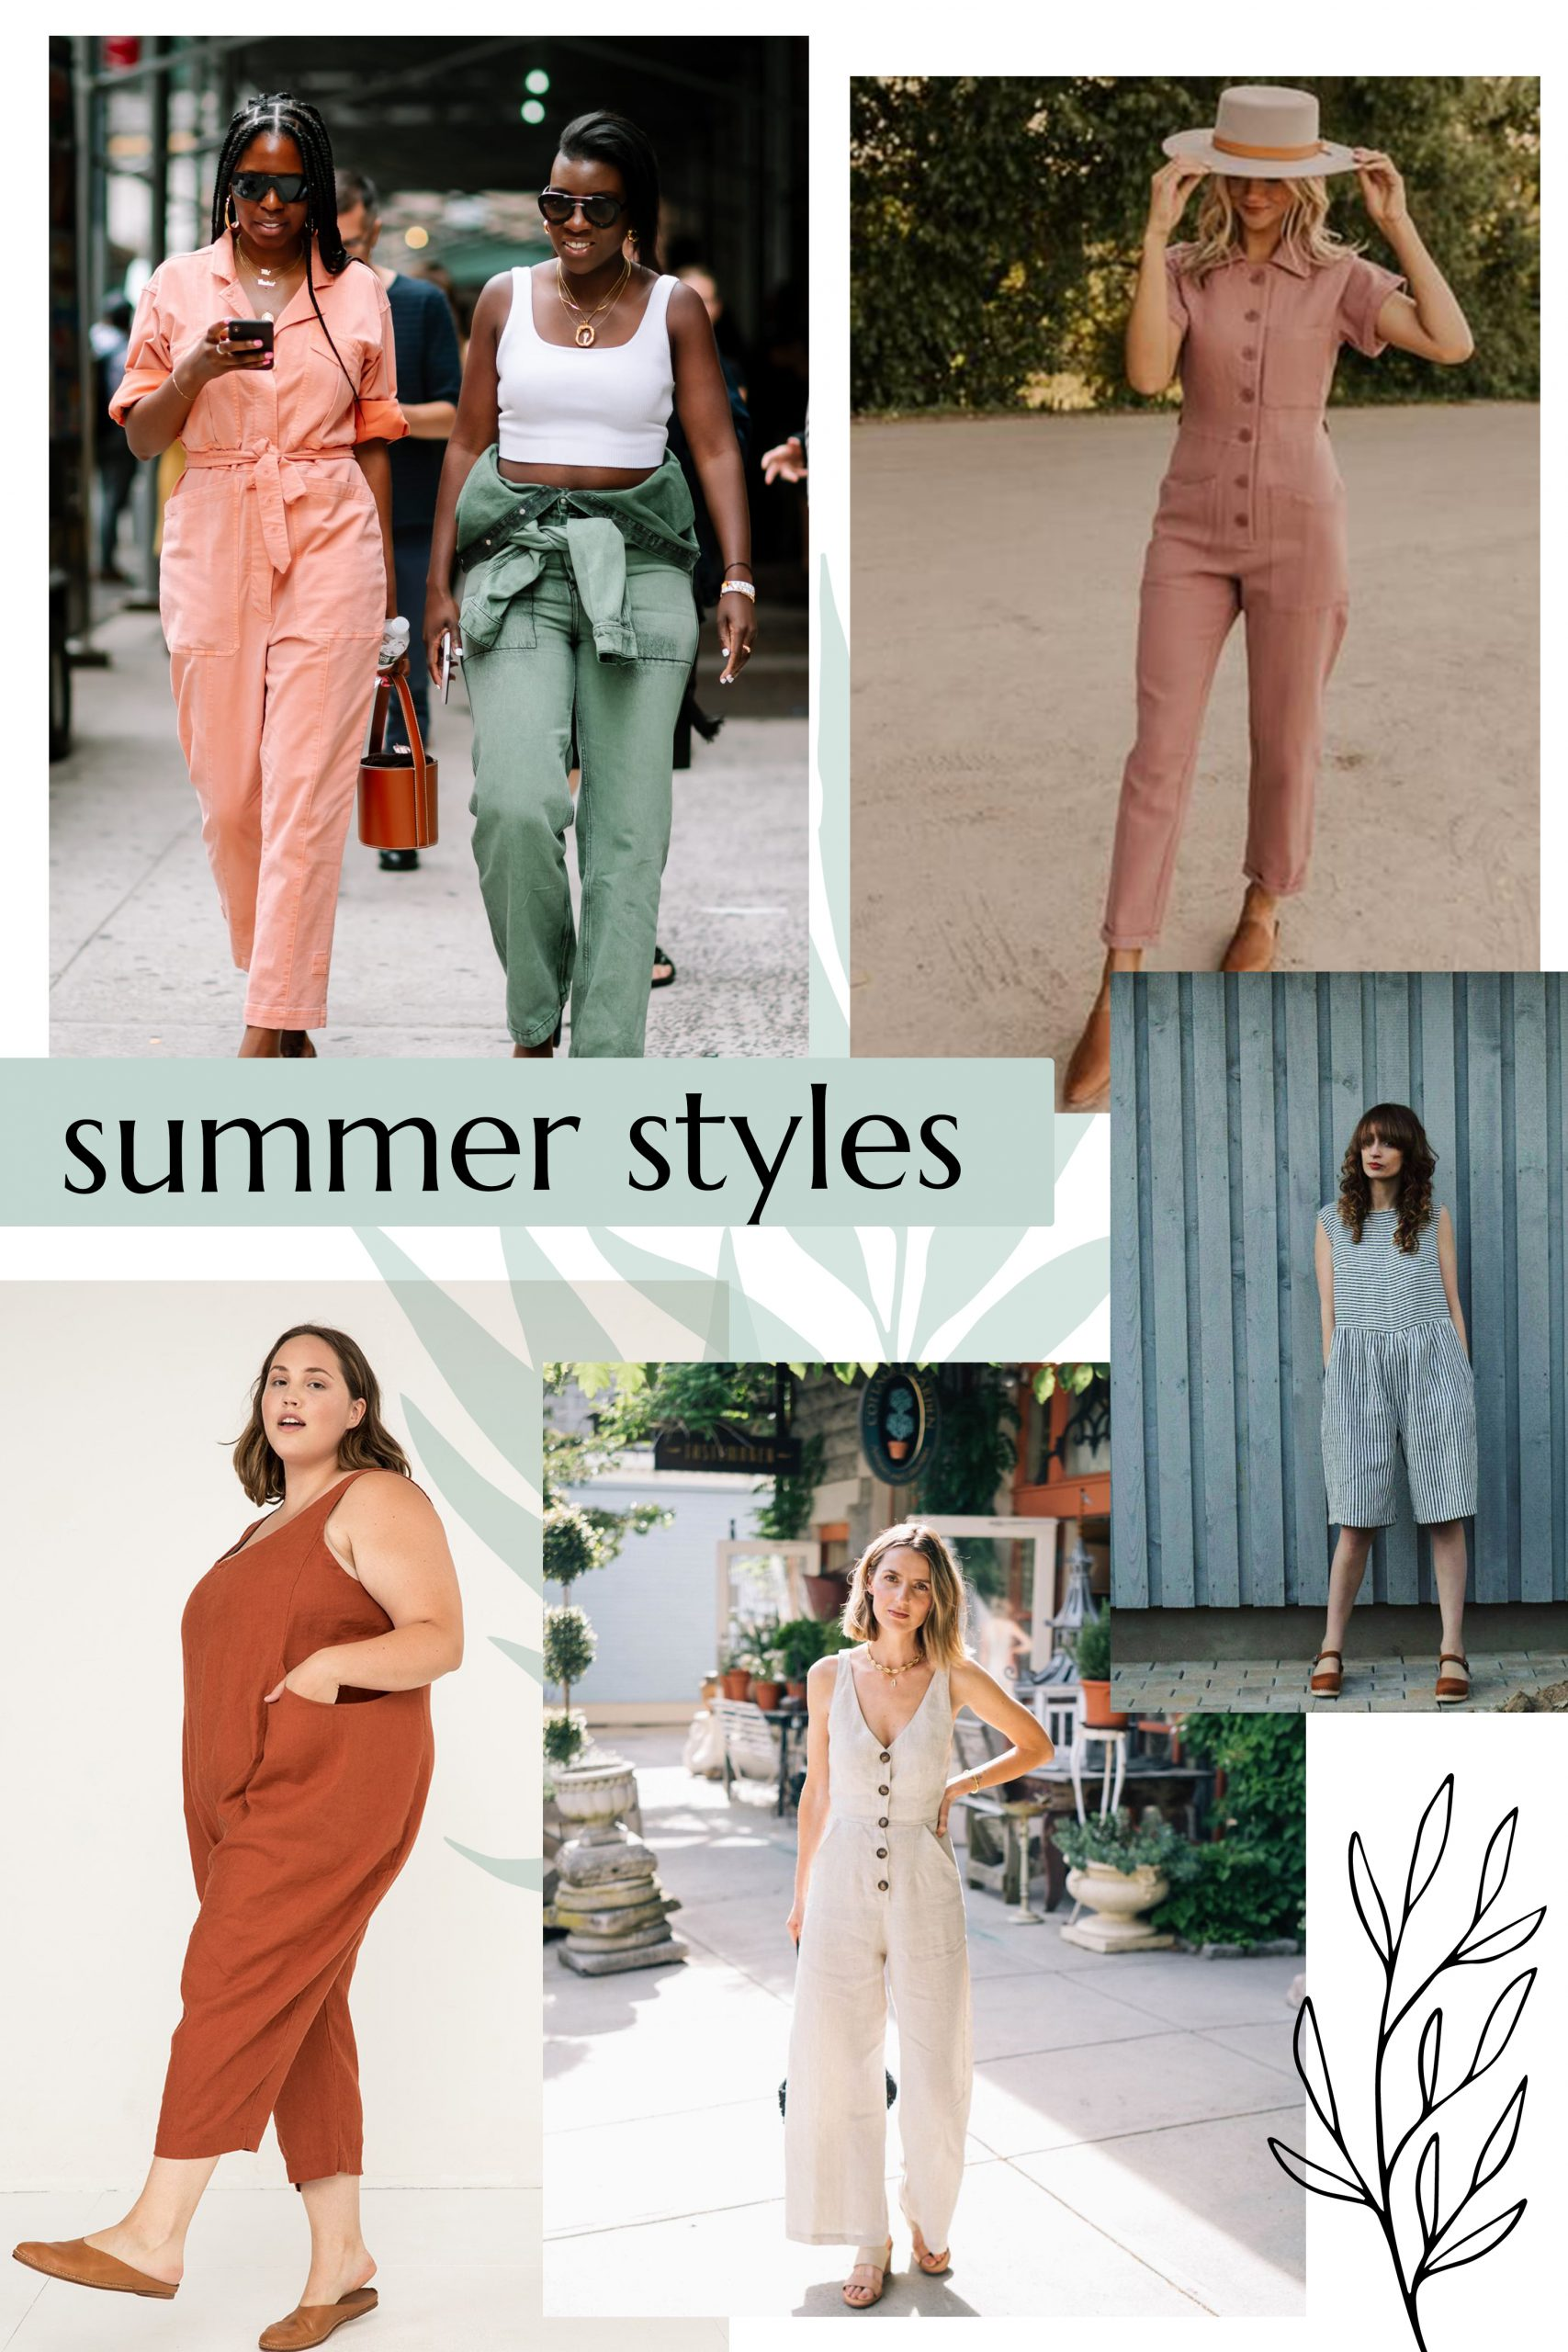 Summer styles for Durban